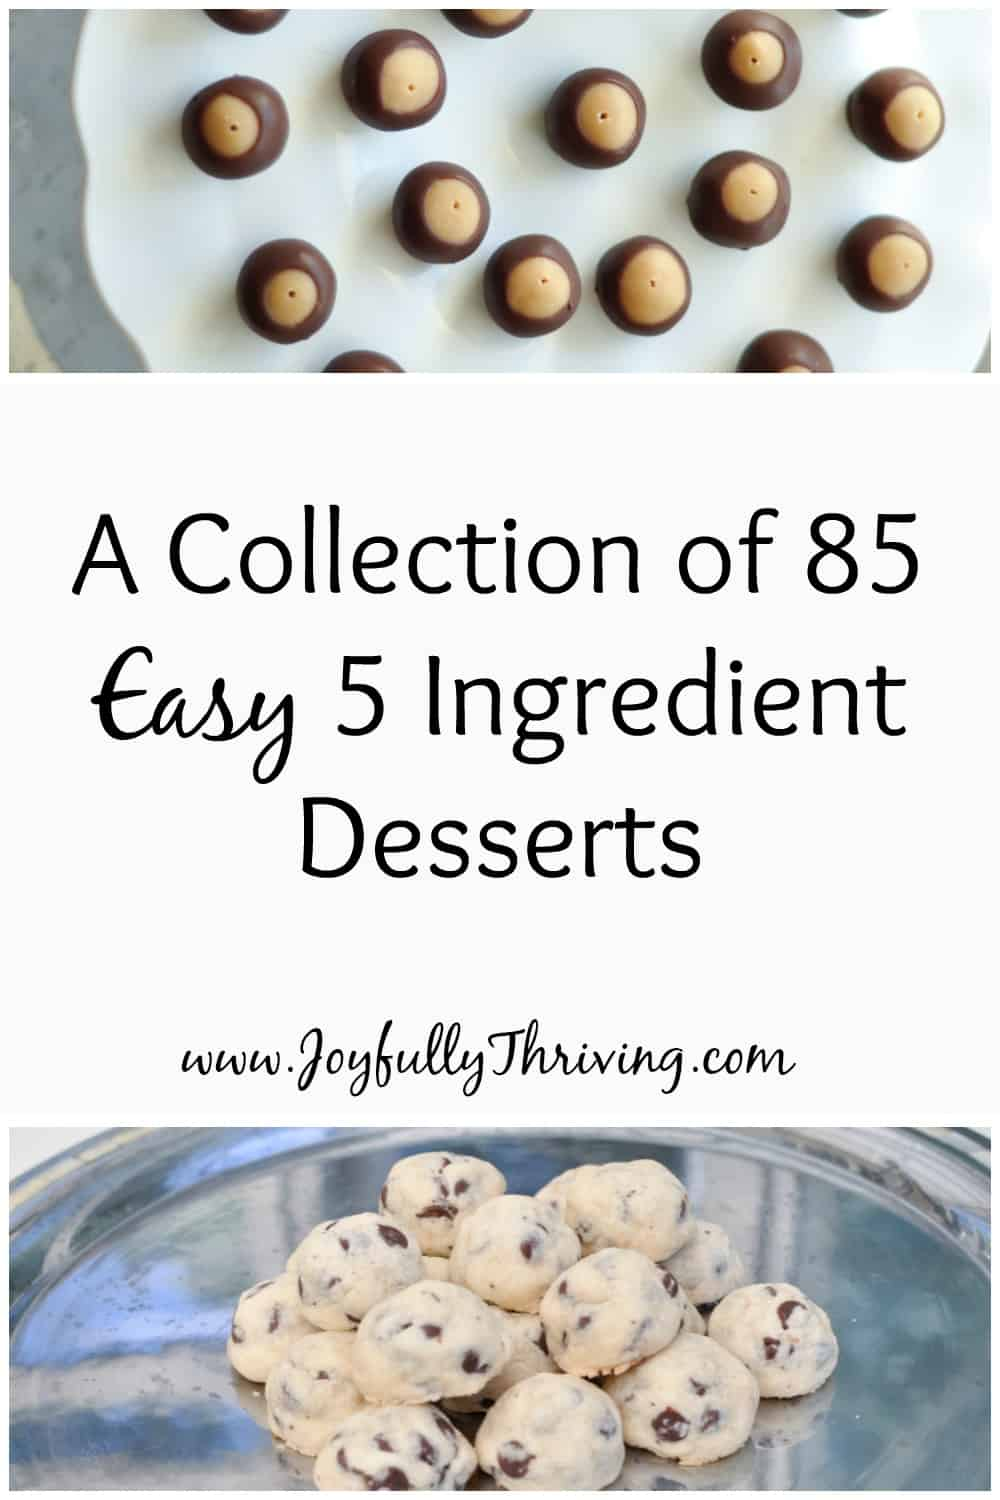 85 Easy 5 Ingredient Desserts - I love this list! So many delicious and simple treats on this list!